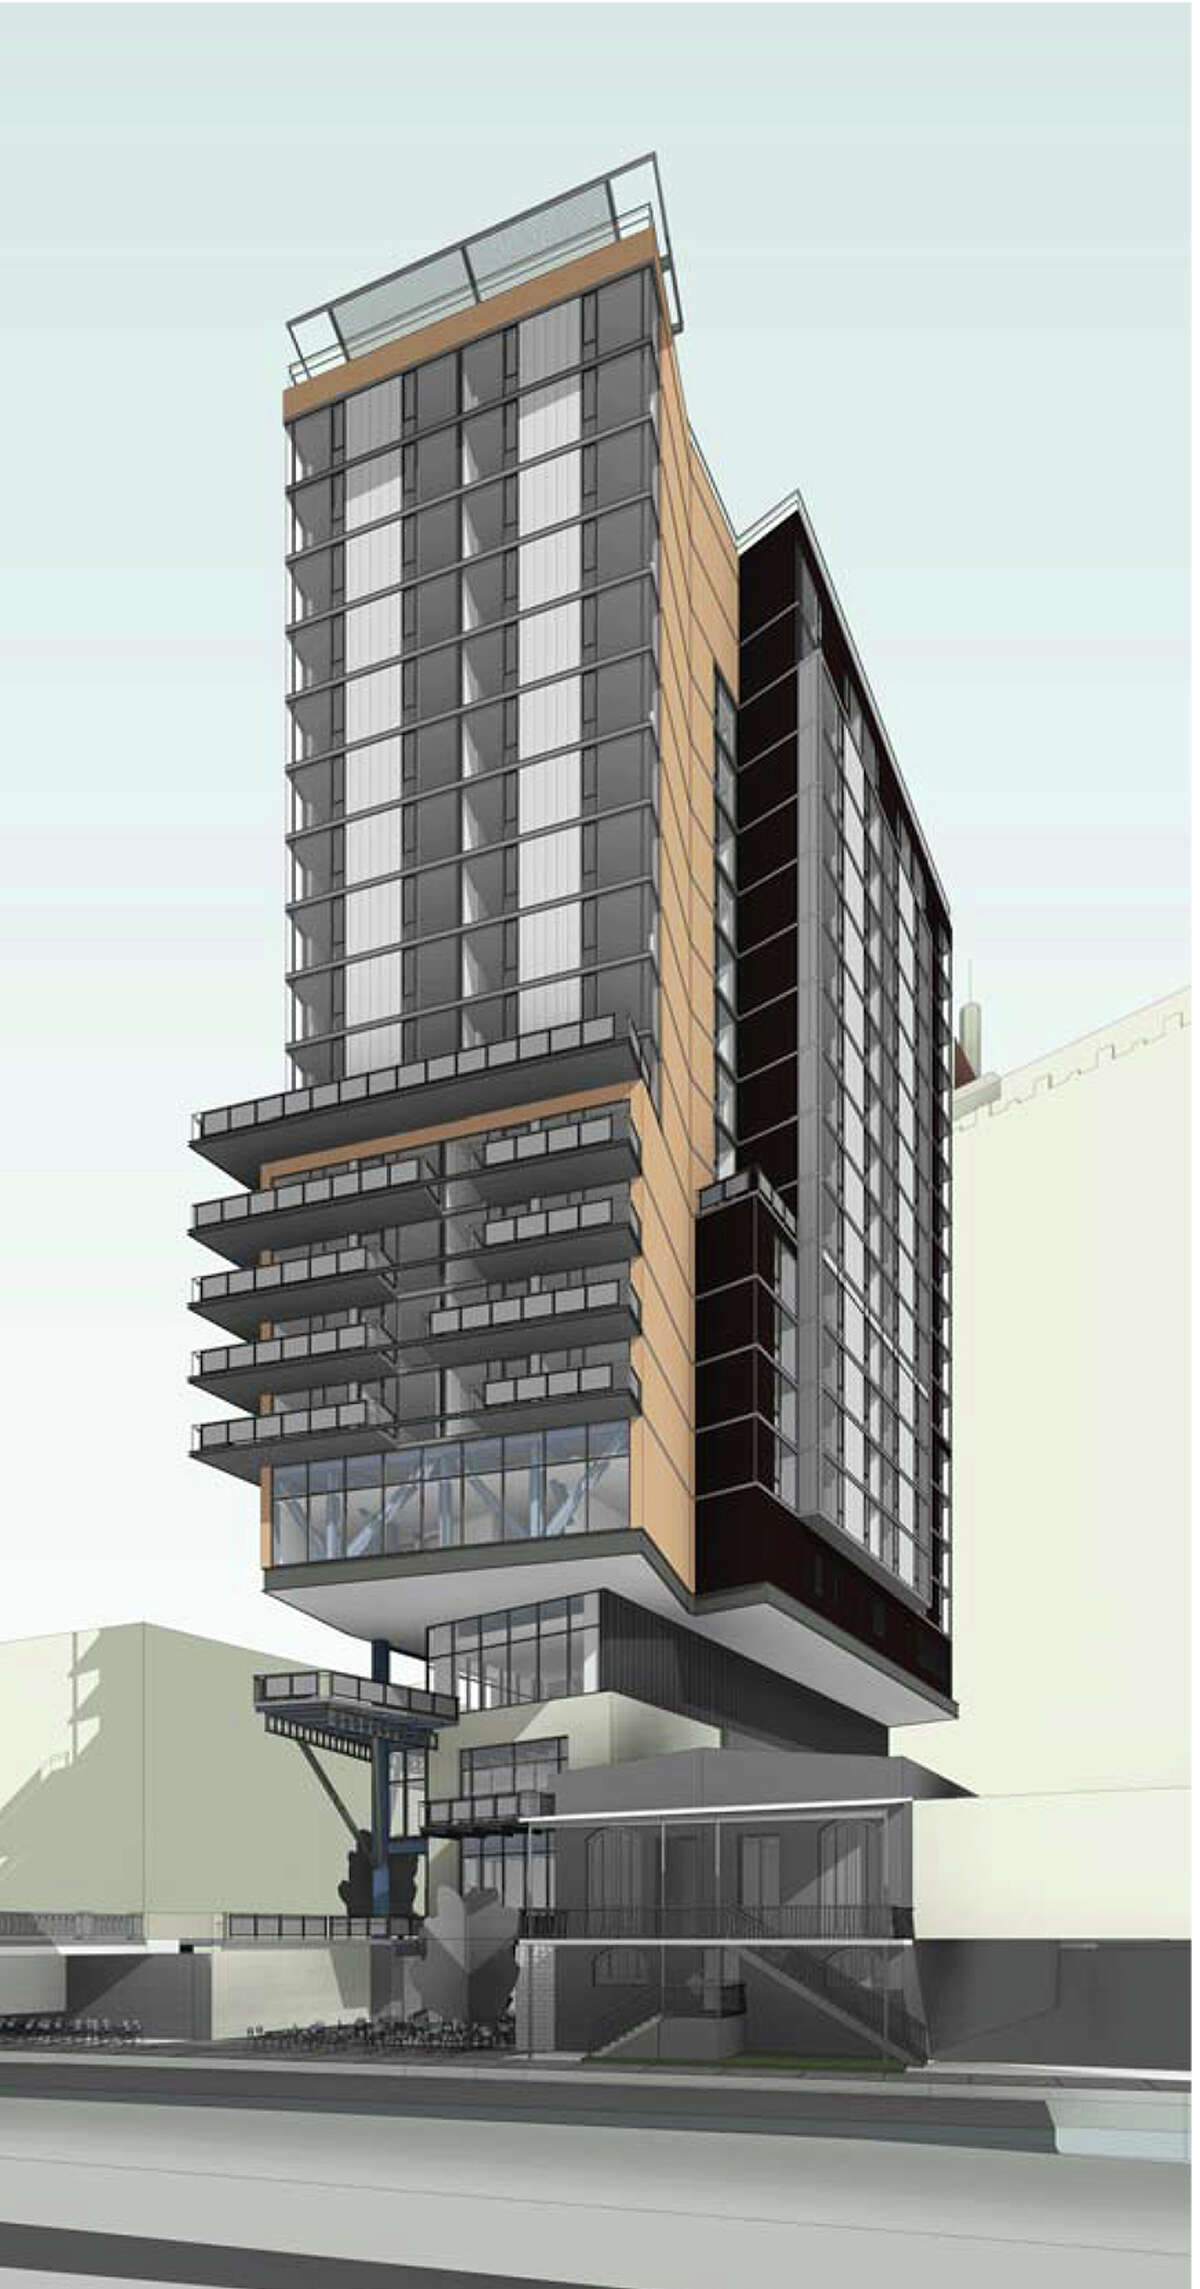 The Canopy by Hilton hotel building is estimated to cost between $55 million and $60 million. Construction is set to begin within six months and last for about 20 months.